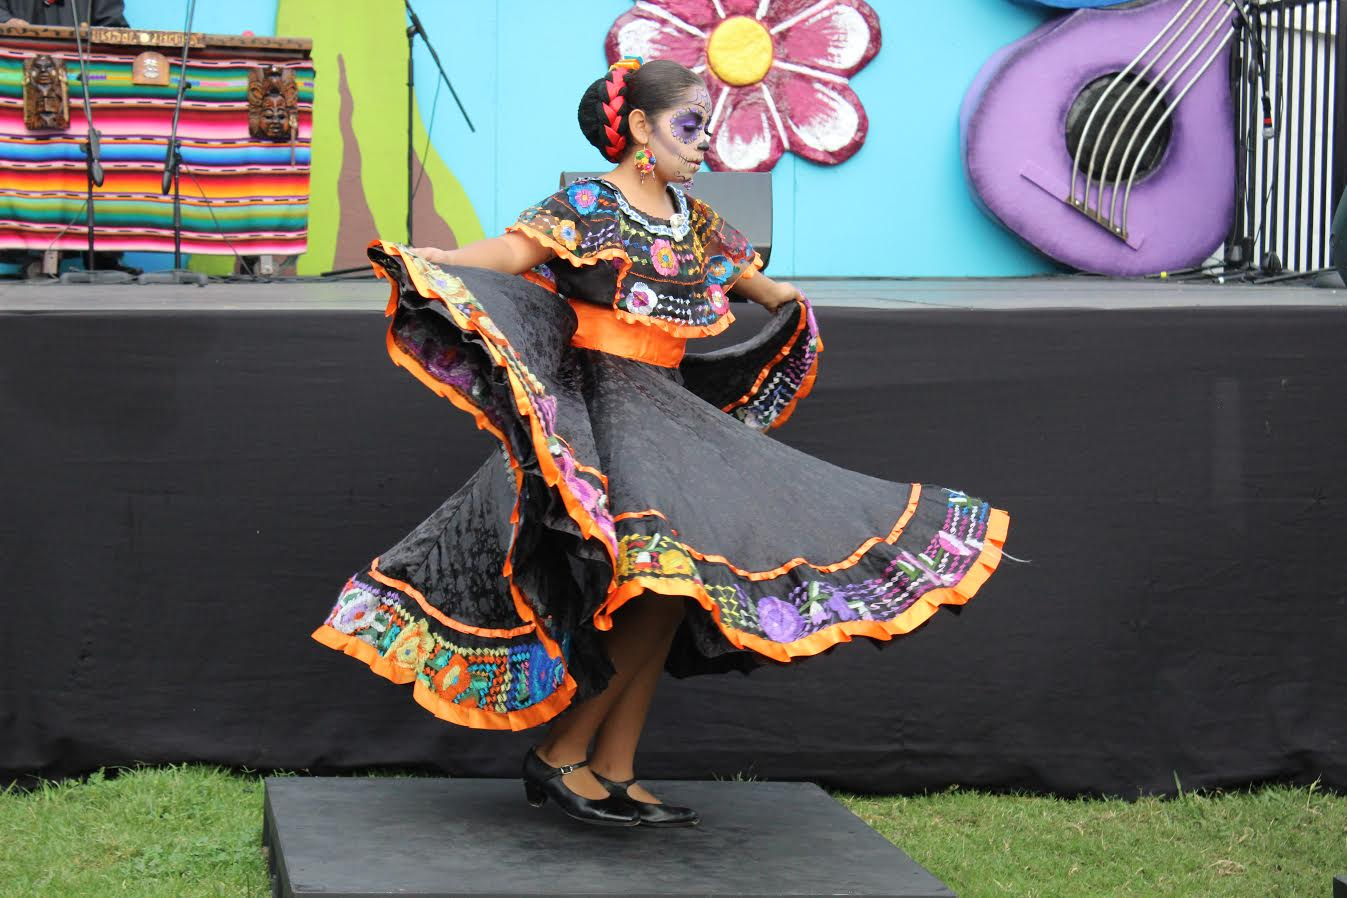 A young girl takes part in the folklorico performance.